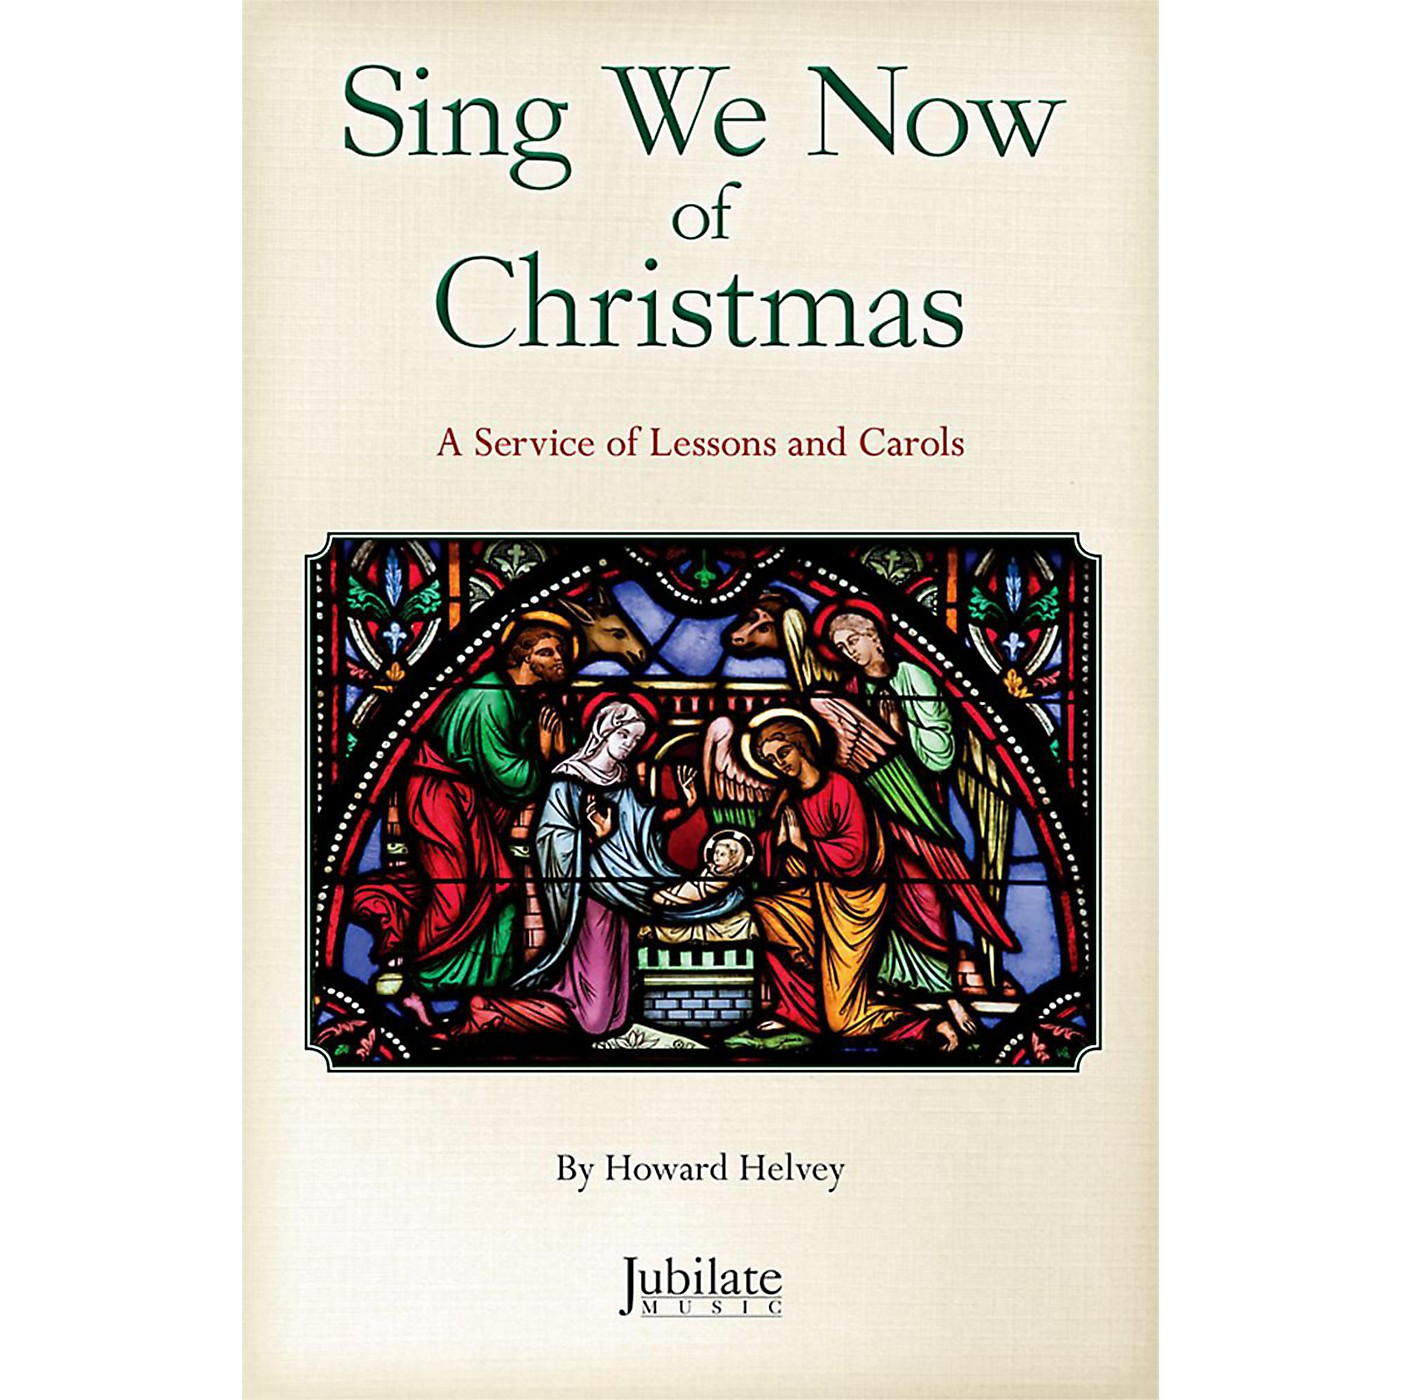 JUBILATE Sing We Now of Christmas Orchestration CD-ROM thumbnail